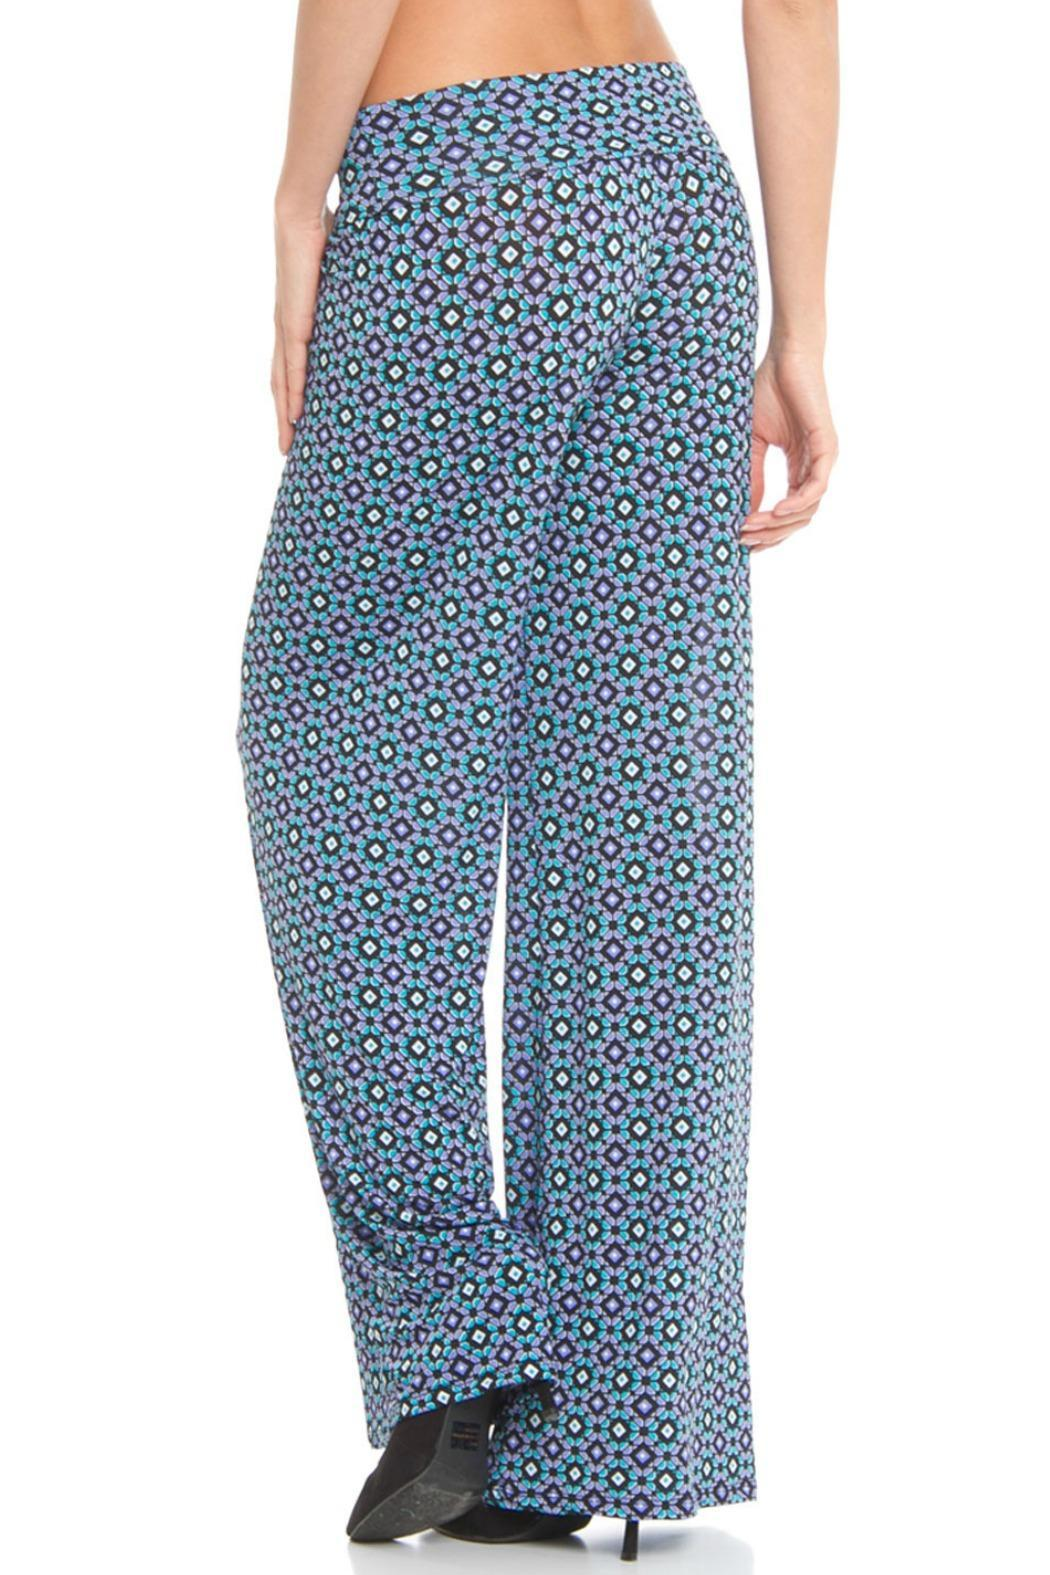 Venezia Cashmere Printed Palazzo Pants - Front Full Image